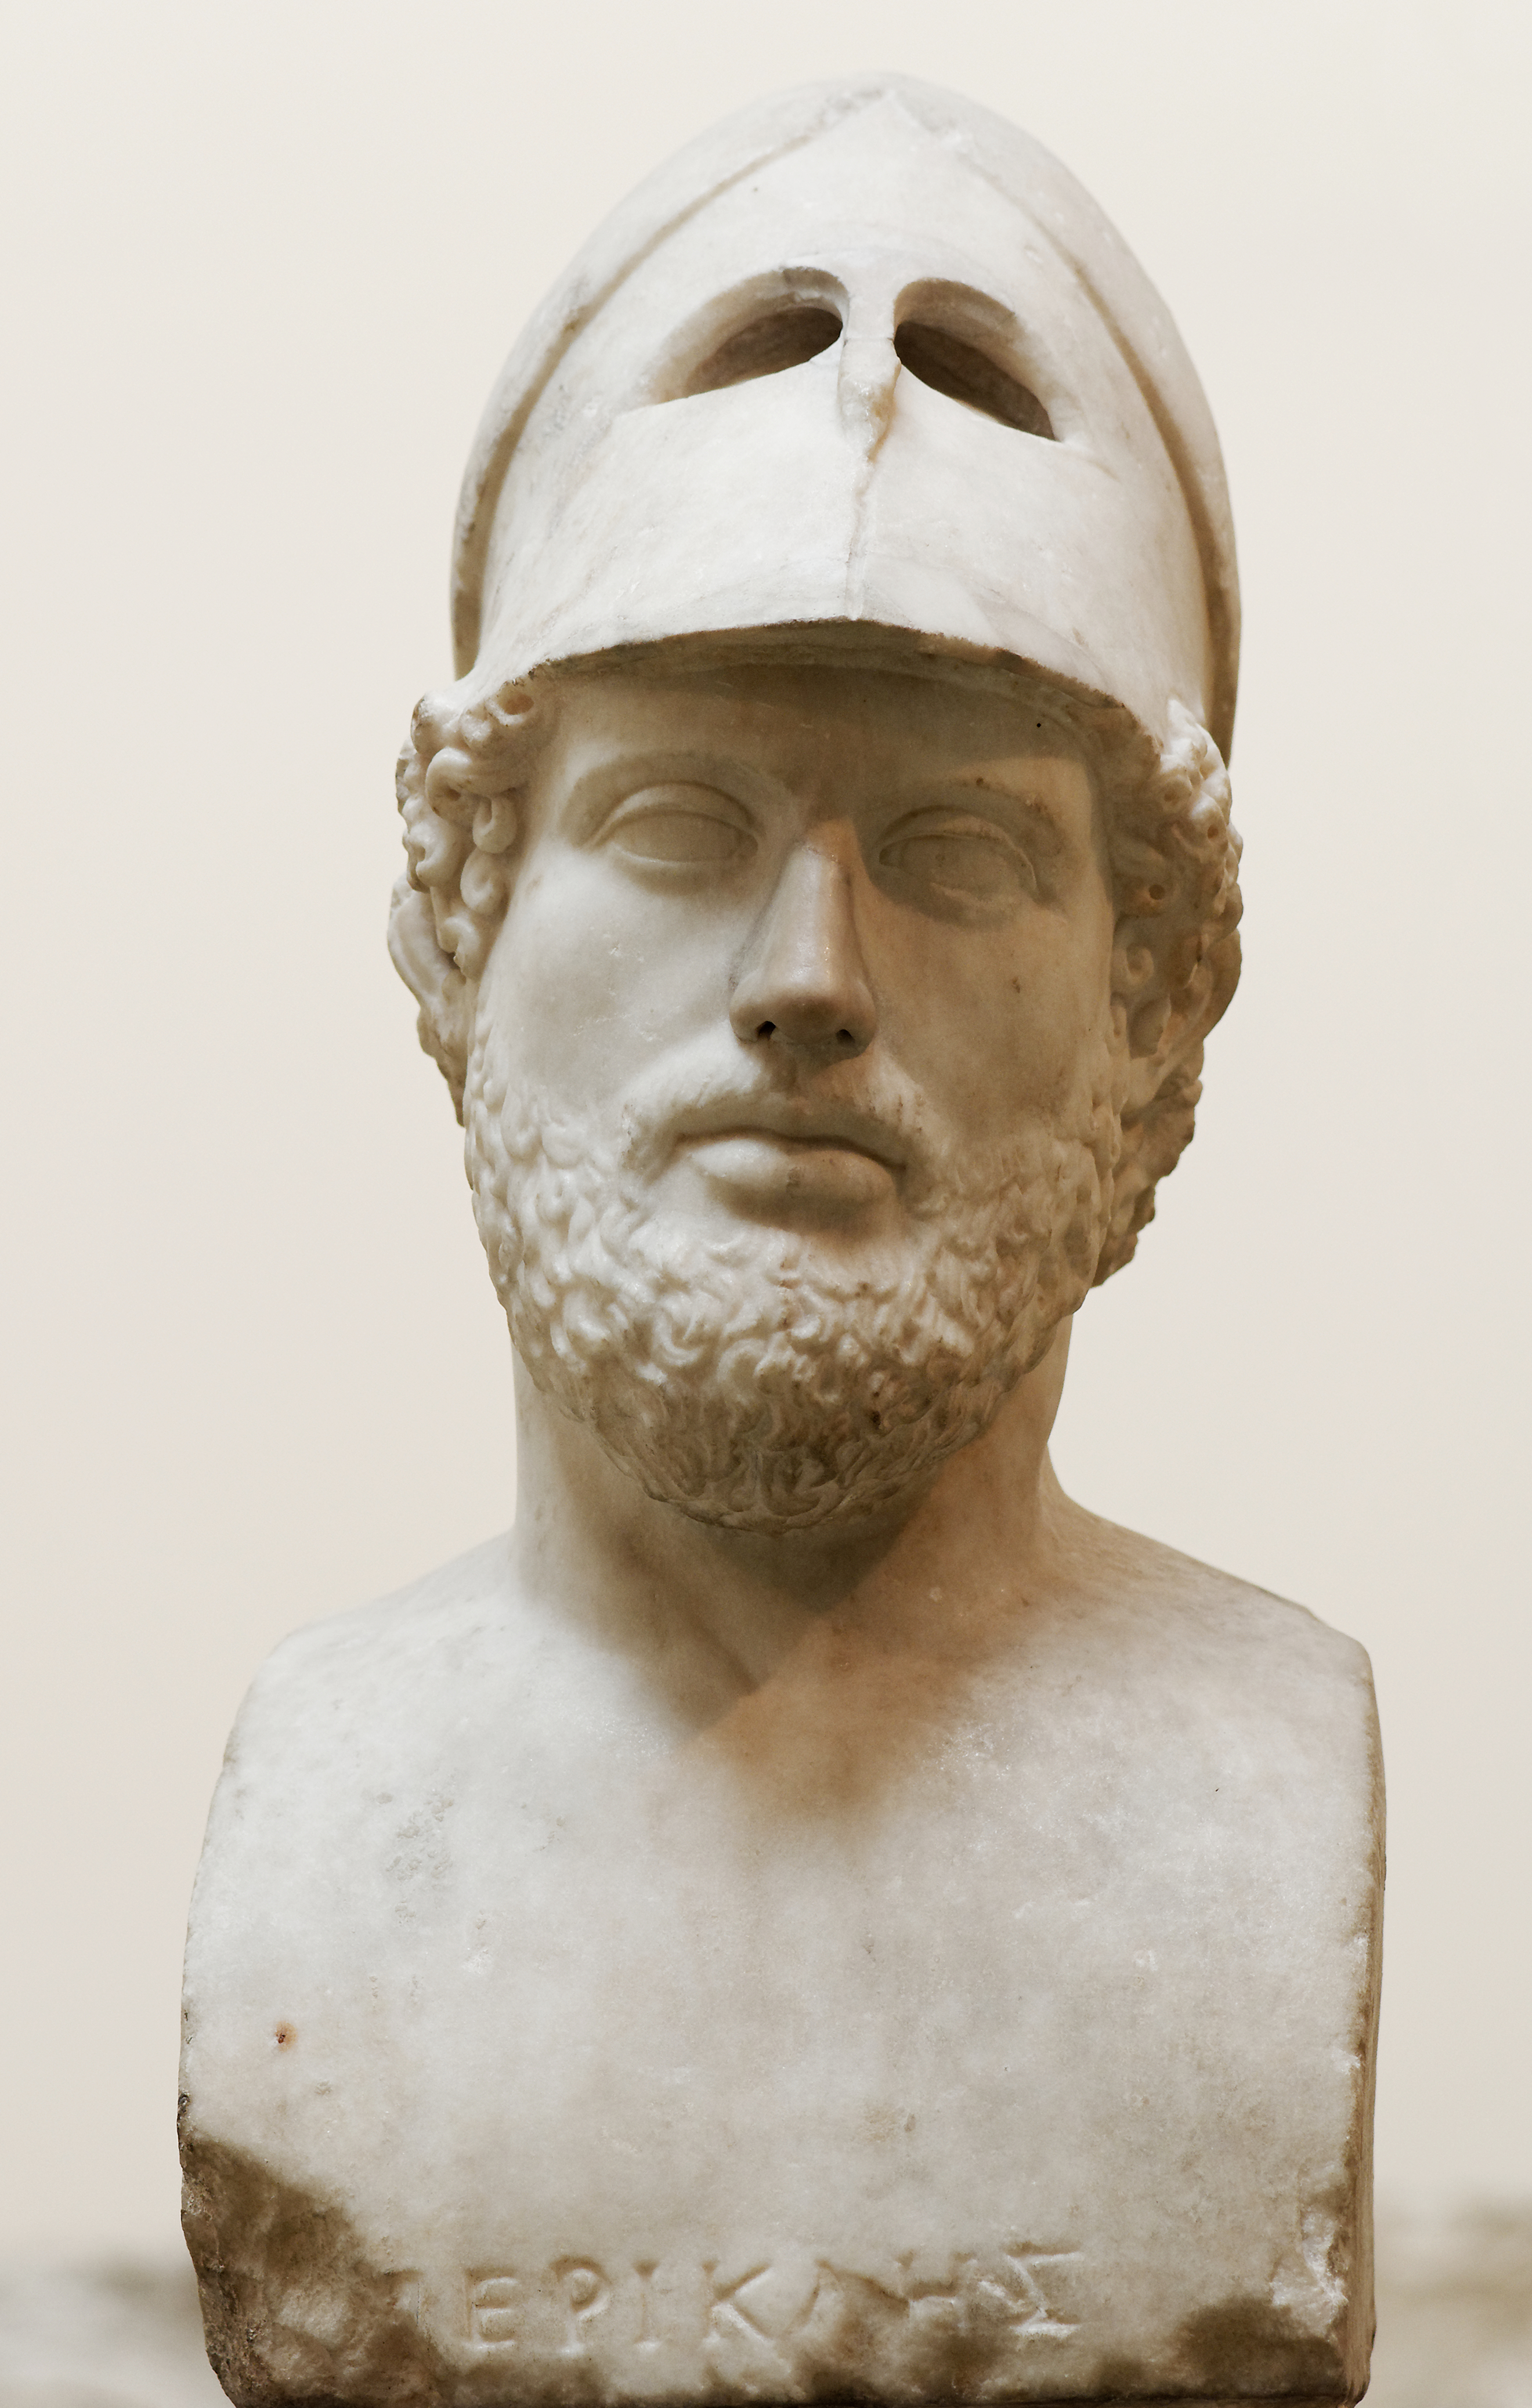 Ancient history of pericles and his